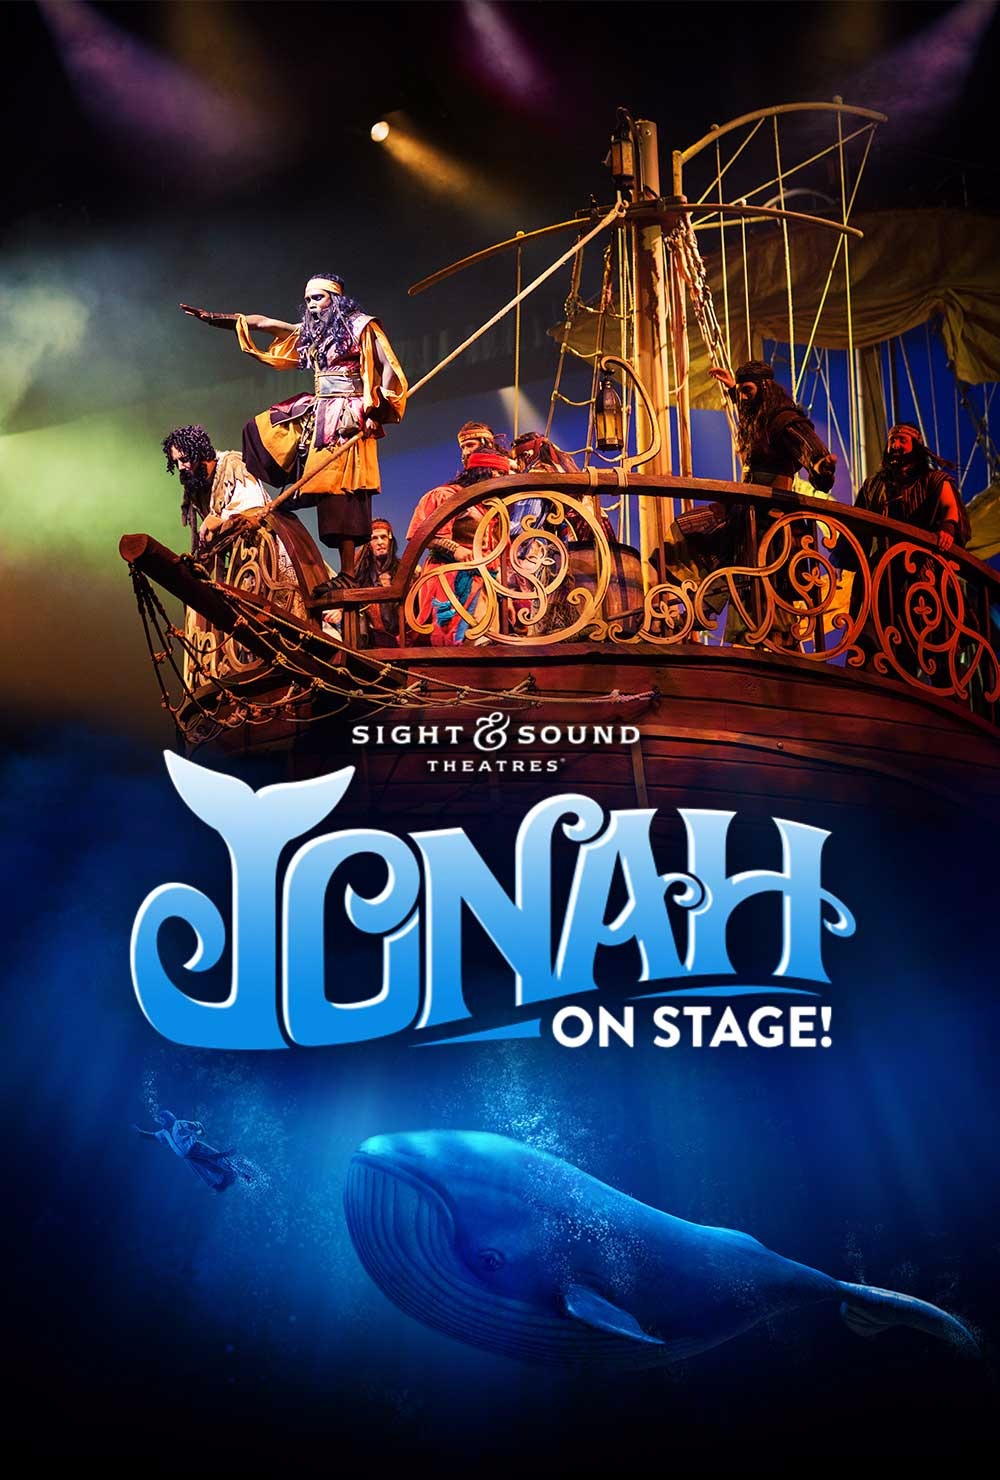 Jonah On Stage's Rodney Coe: God is in the Details